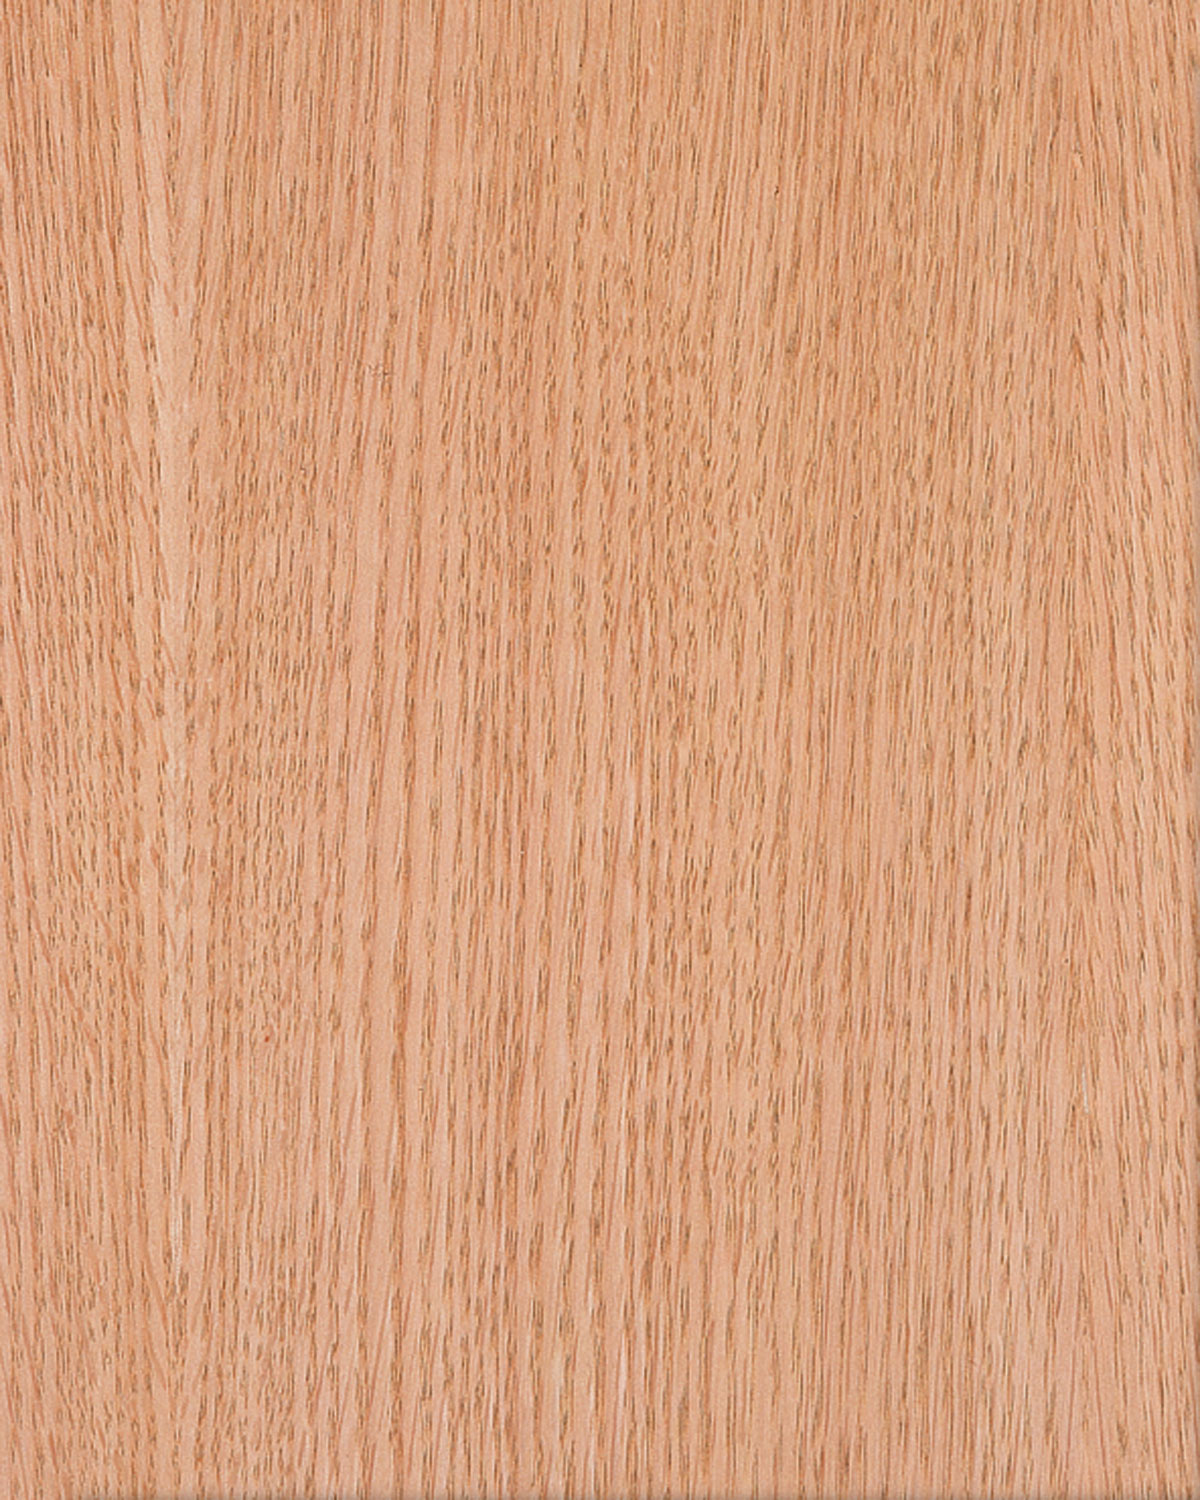 Oak, Red Rift Cut